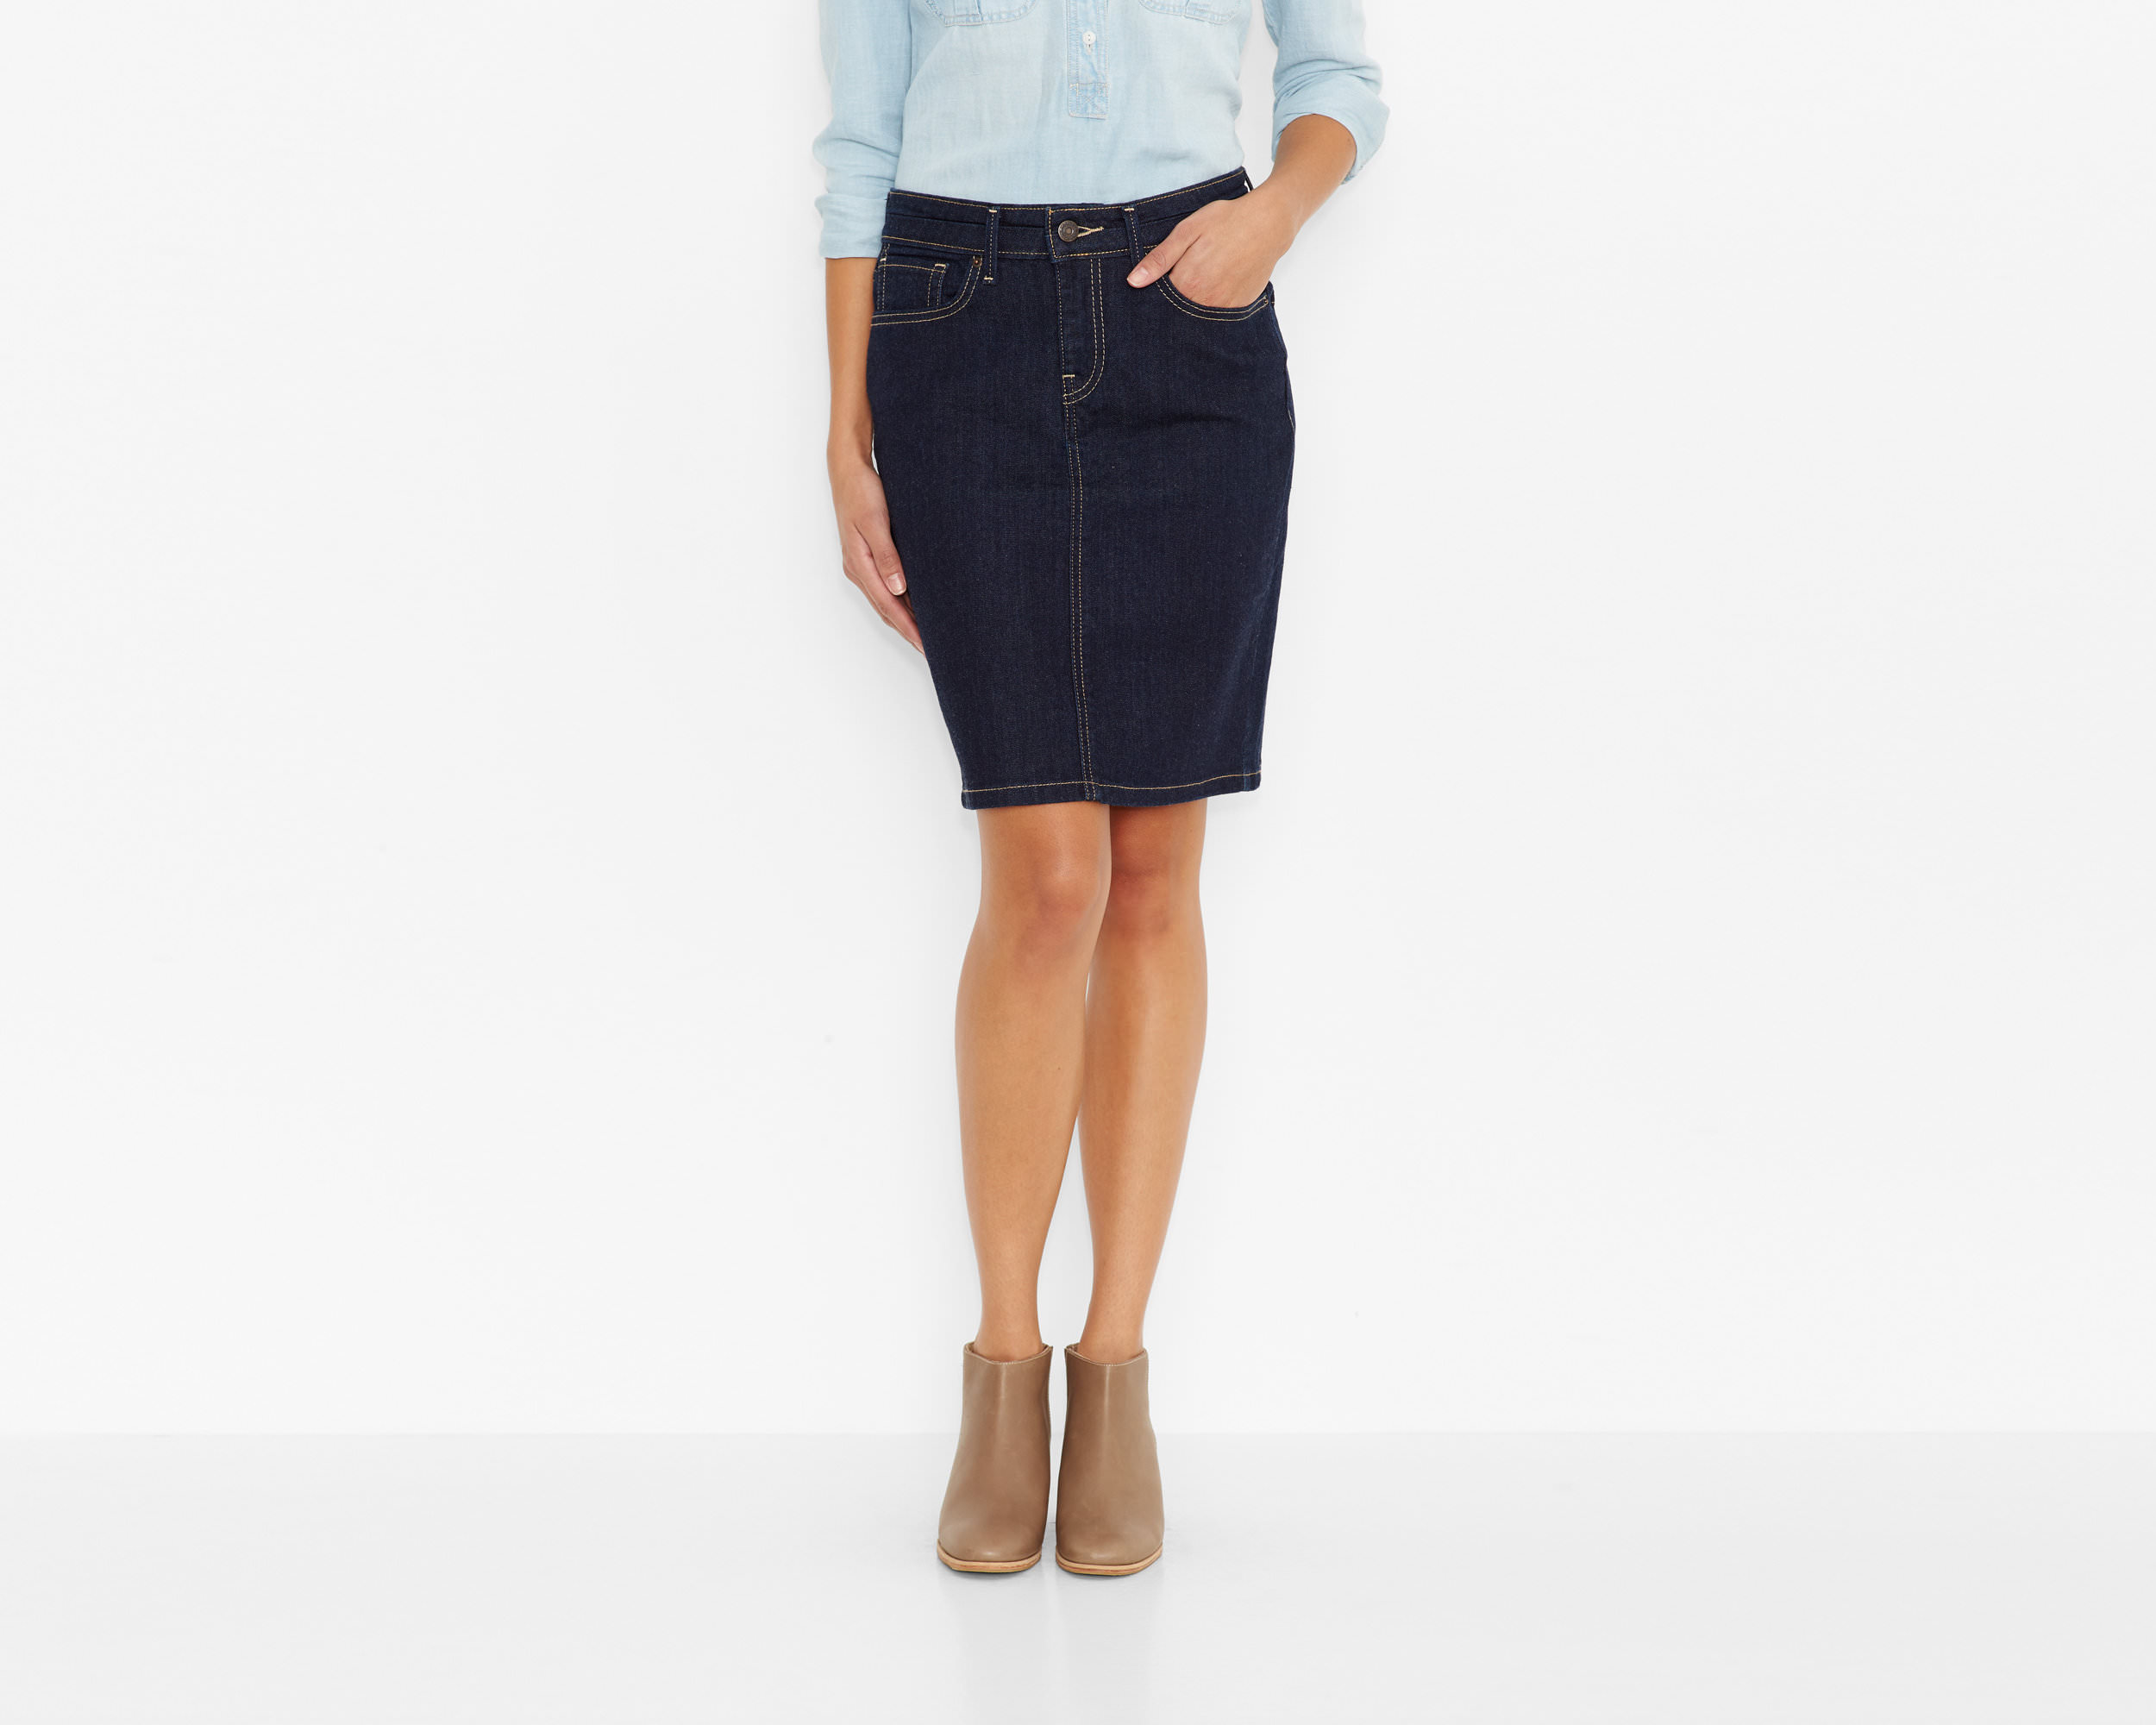 women wear pencil skirt